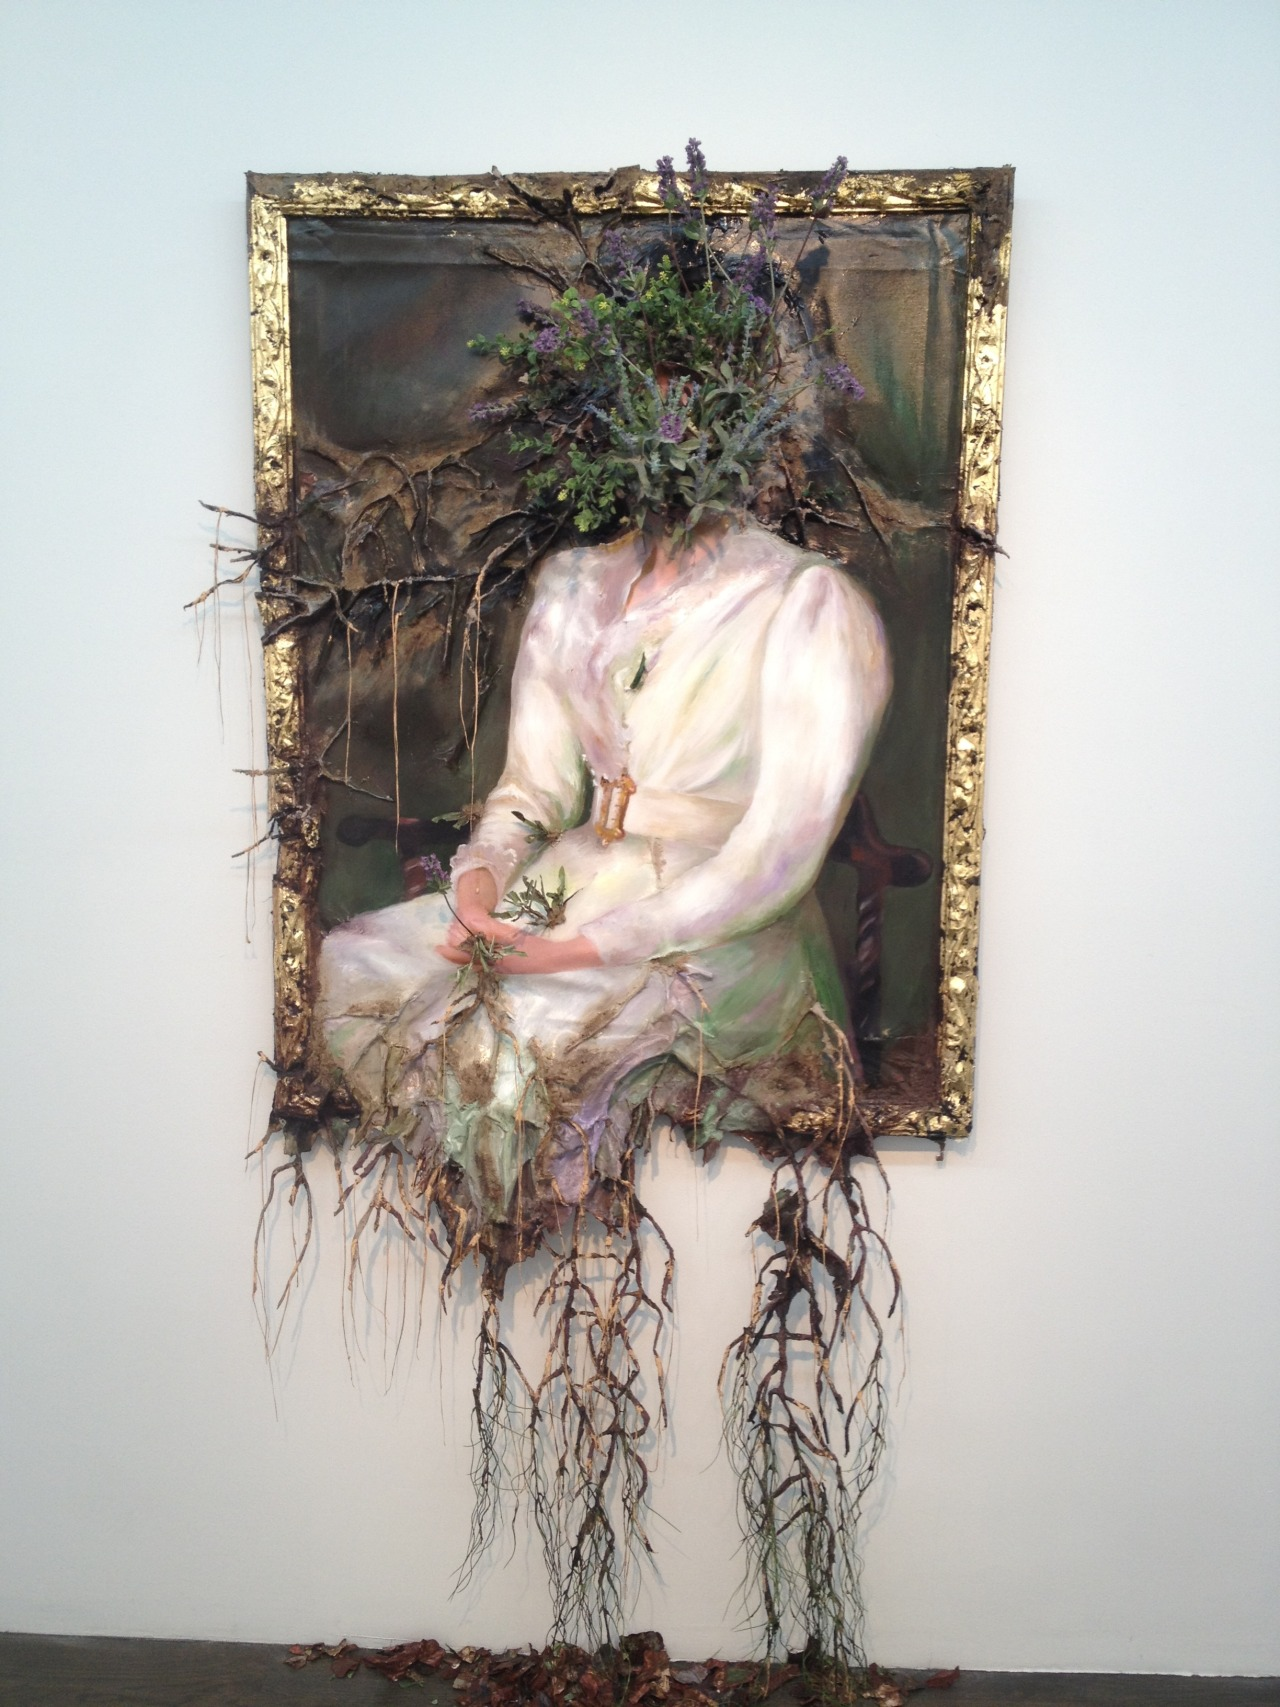 Valerie Hegarty, 'Woman in White with Flowers', 2012 canvas, stretcher, acrylics, paper, glue, foil, foam, wire, artificial foliage, sand, thread  (via 2headedsnake)